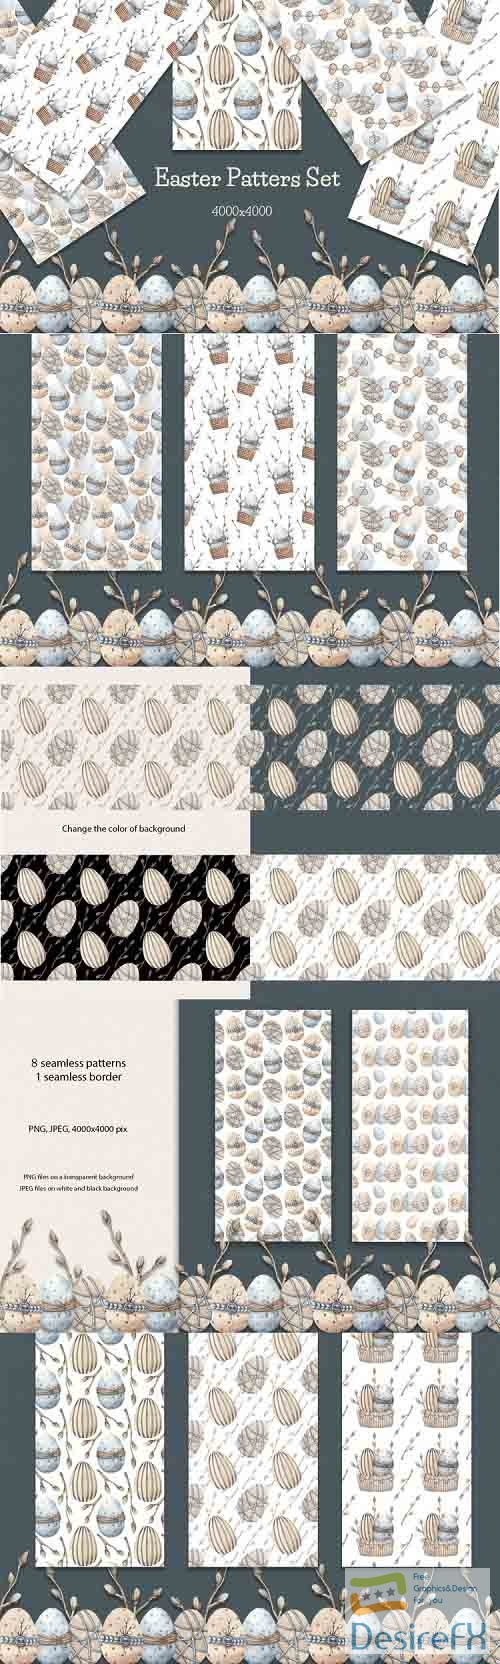 Easter Patterns Set - 1268011